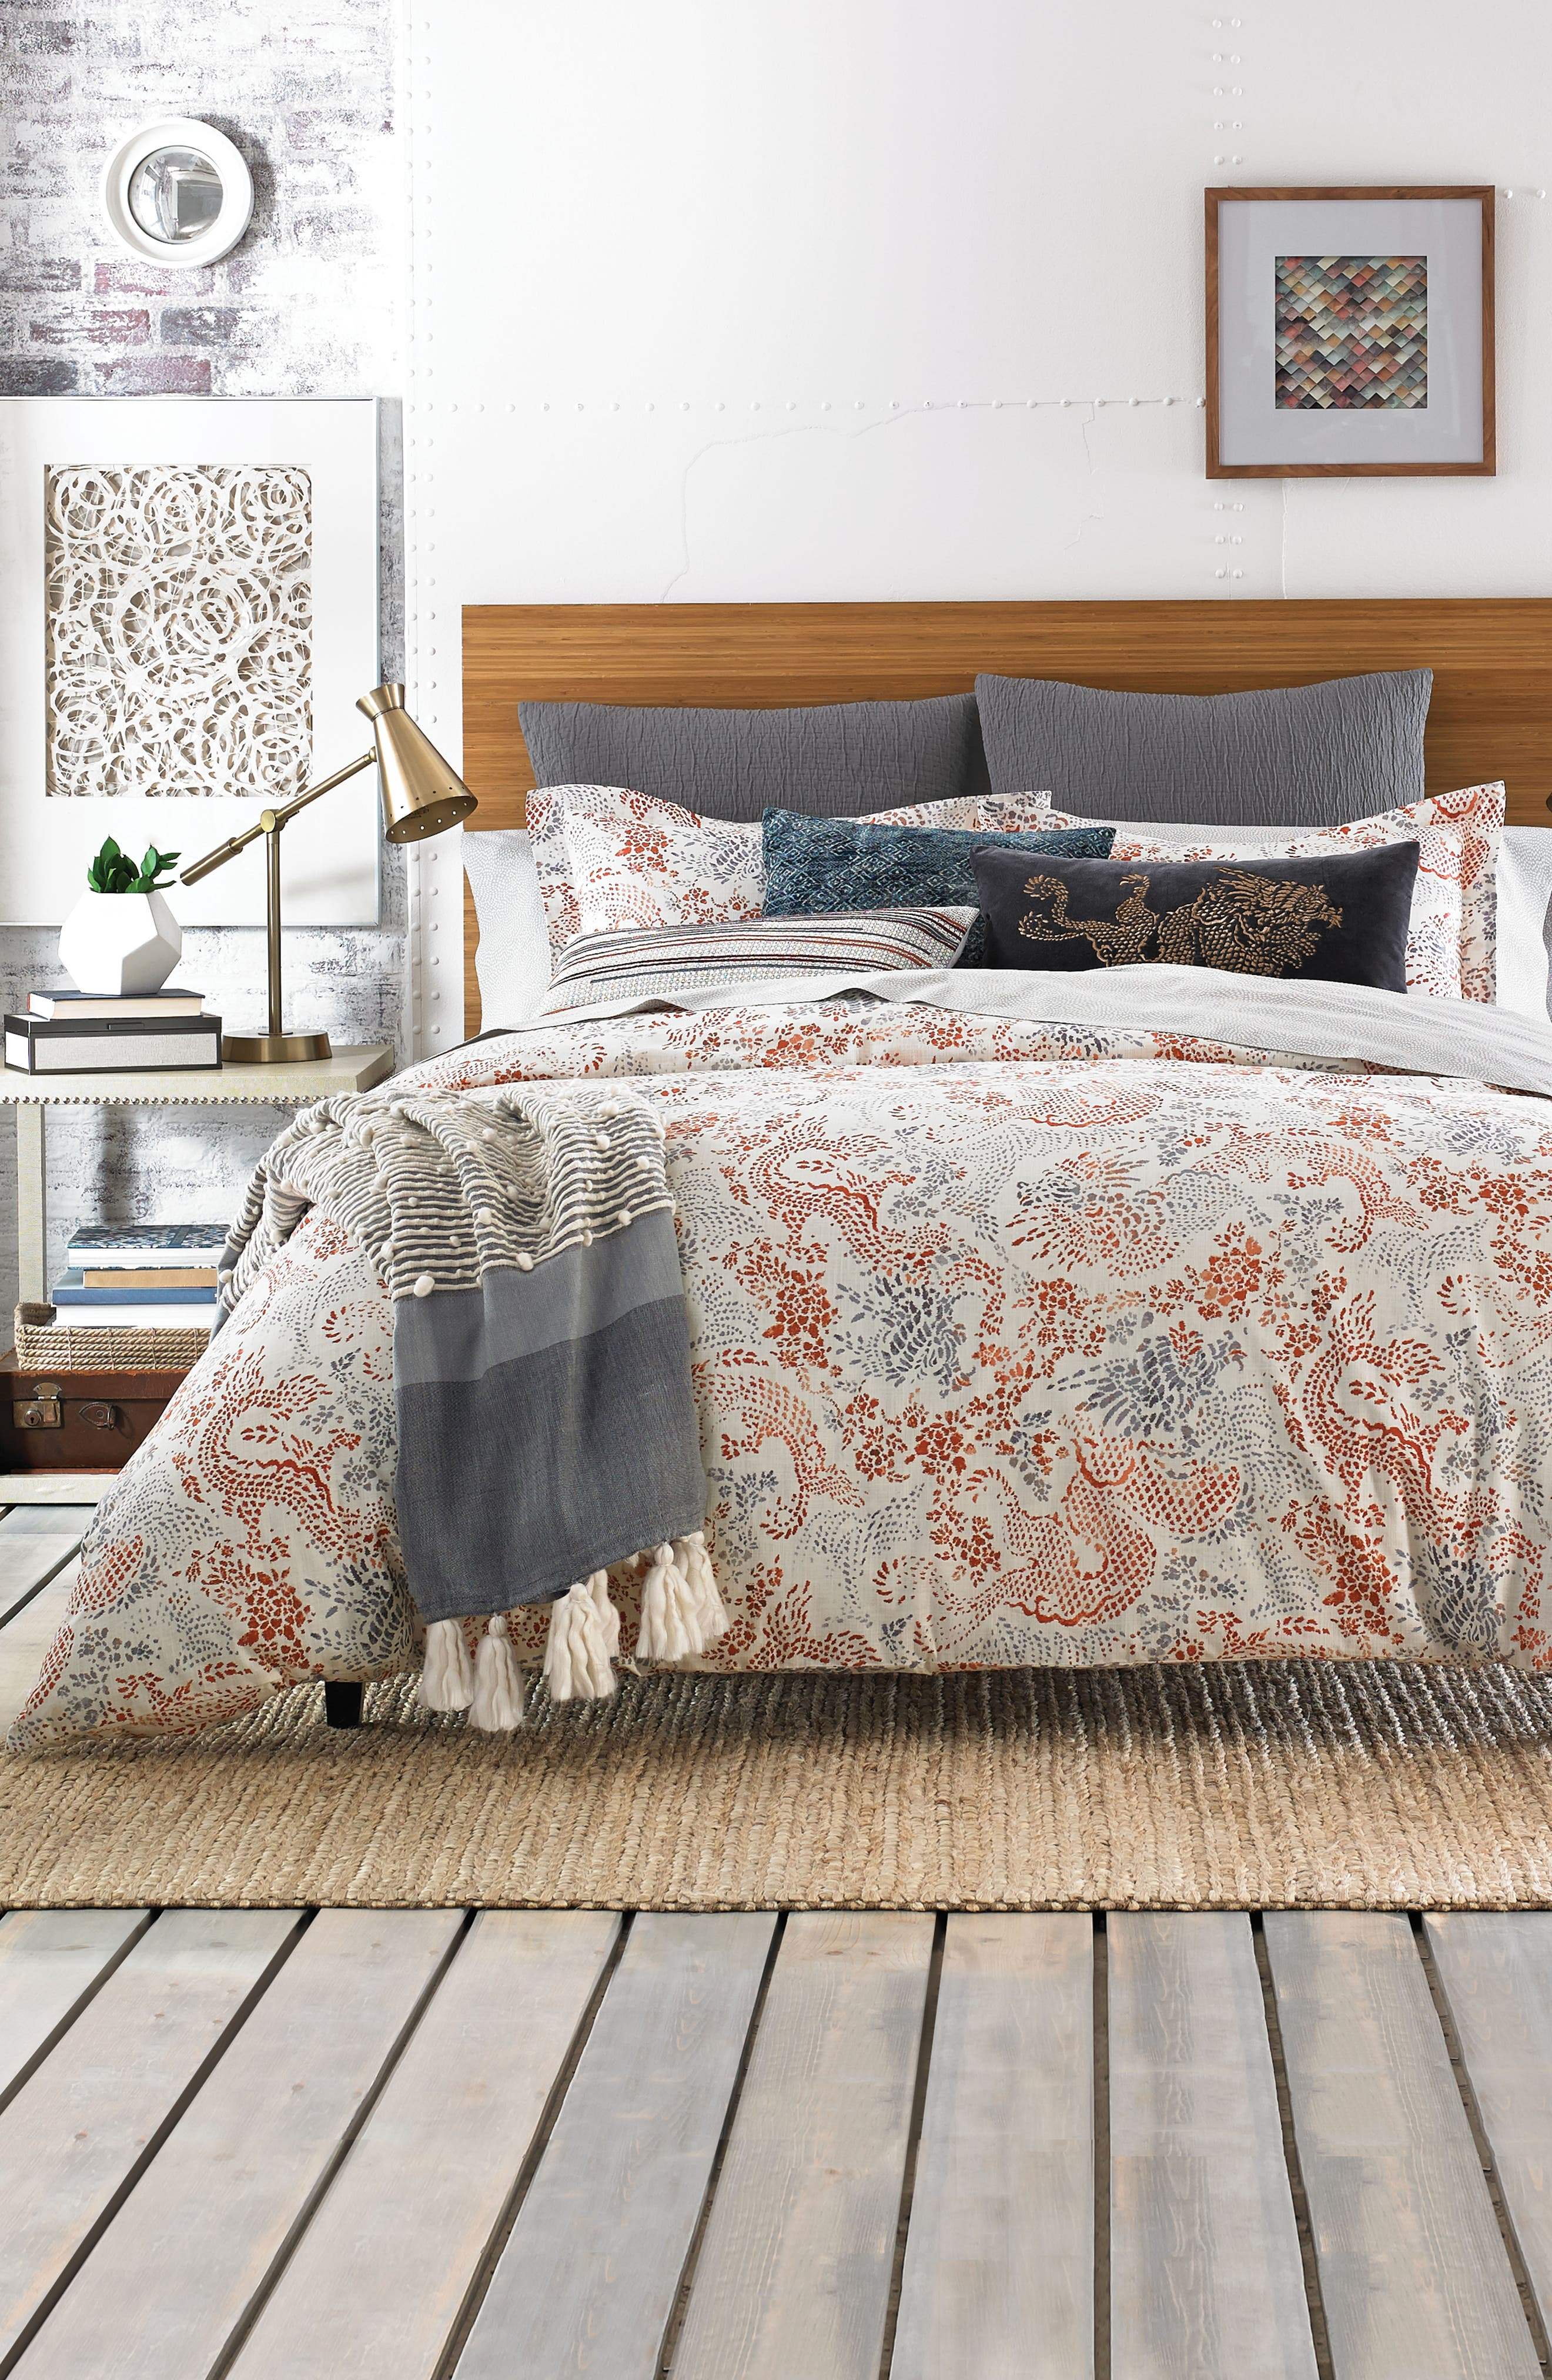 set comforter nicole swatch interesting from furniture paisley bed goods button er planter silo studio plant multi home lamps bedding miller max planters